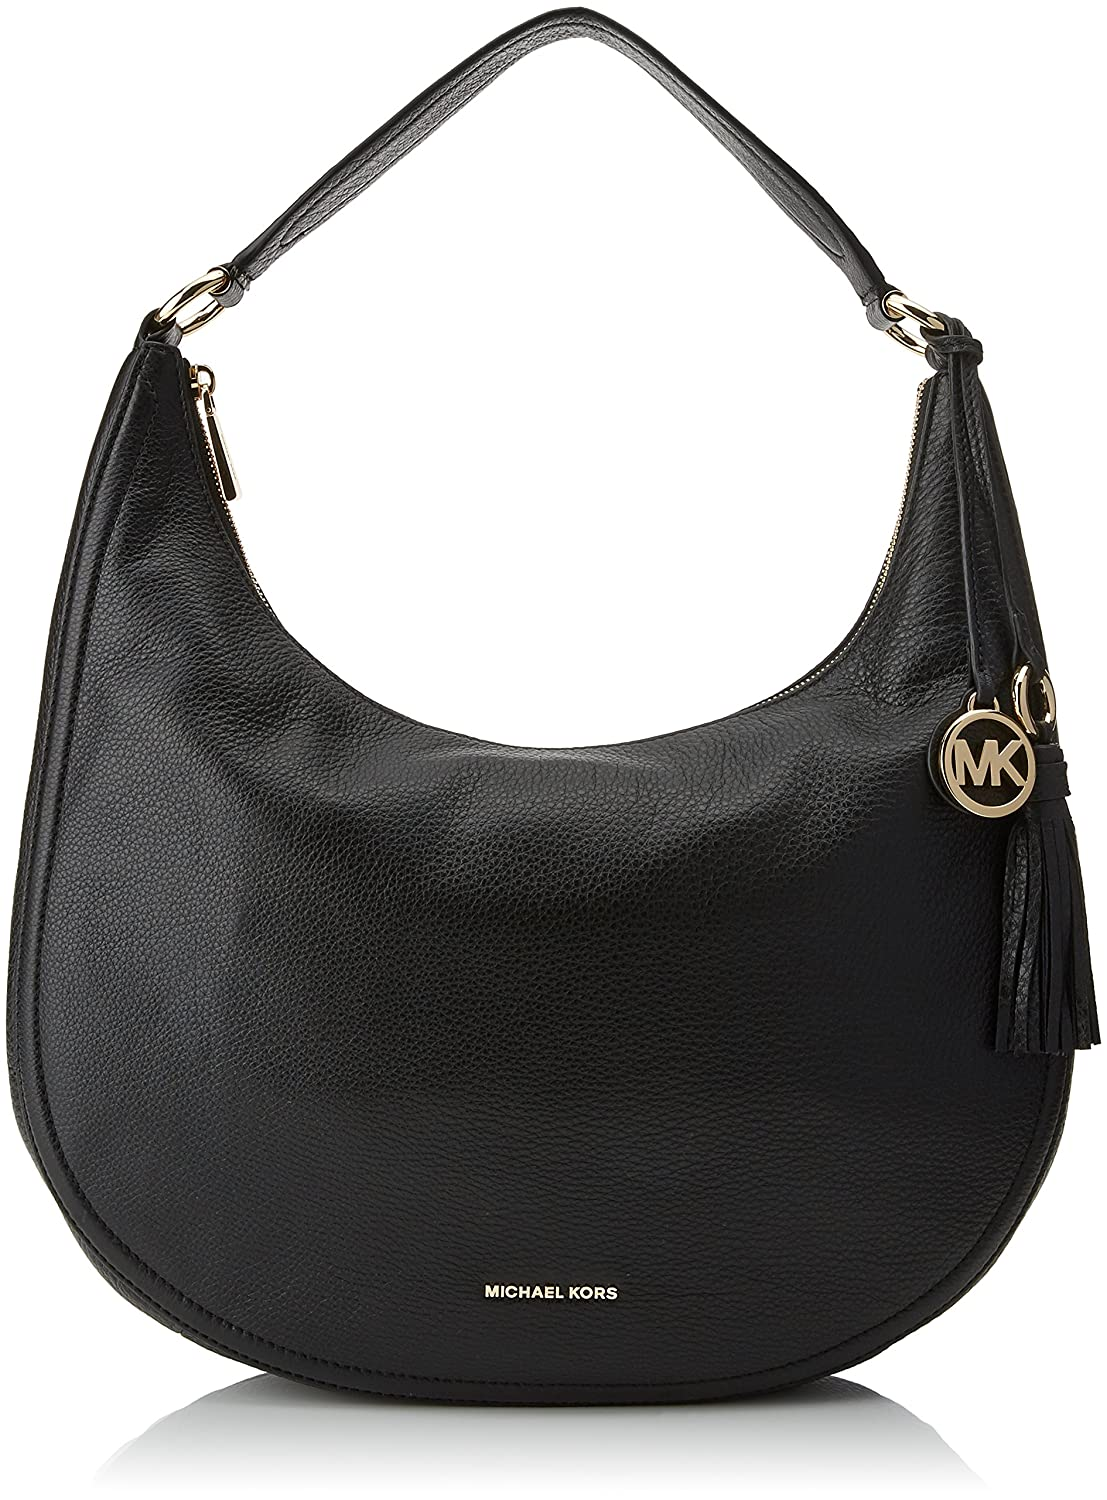 bce6eb6ad99b Amazon.com: Michael Kors Womens Lydia Shoulder Bag Black  (Black)_30F7GL0L3L: Michael Kors: Shoes